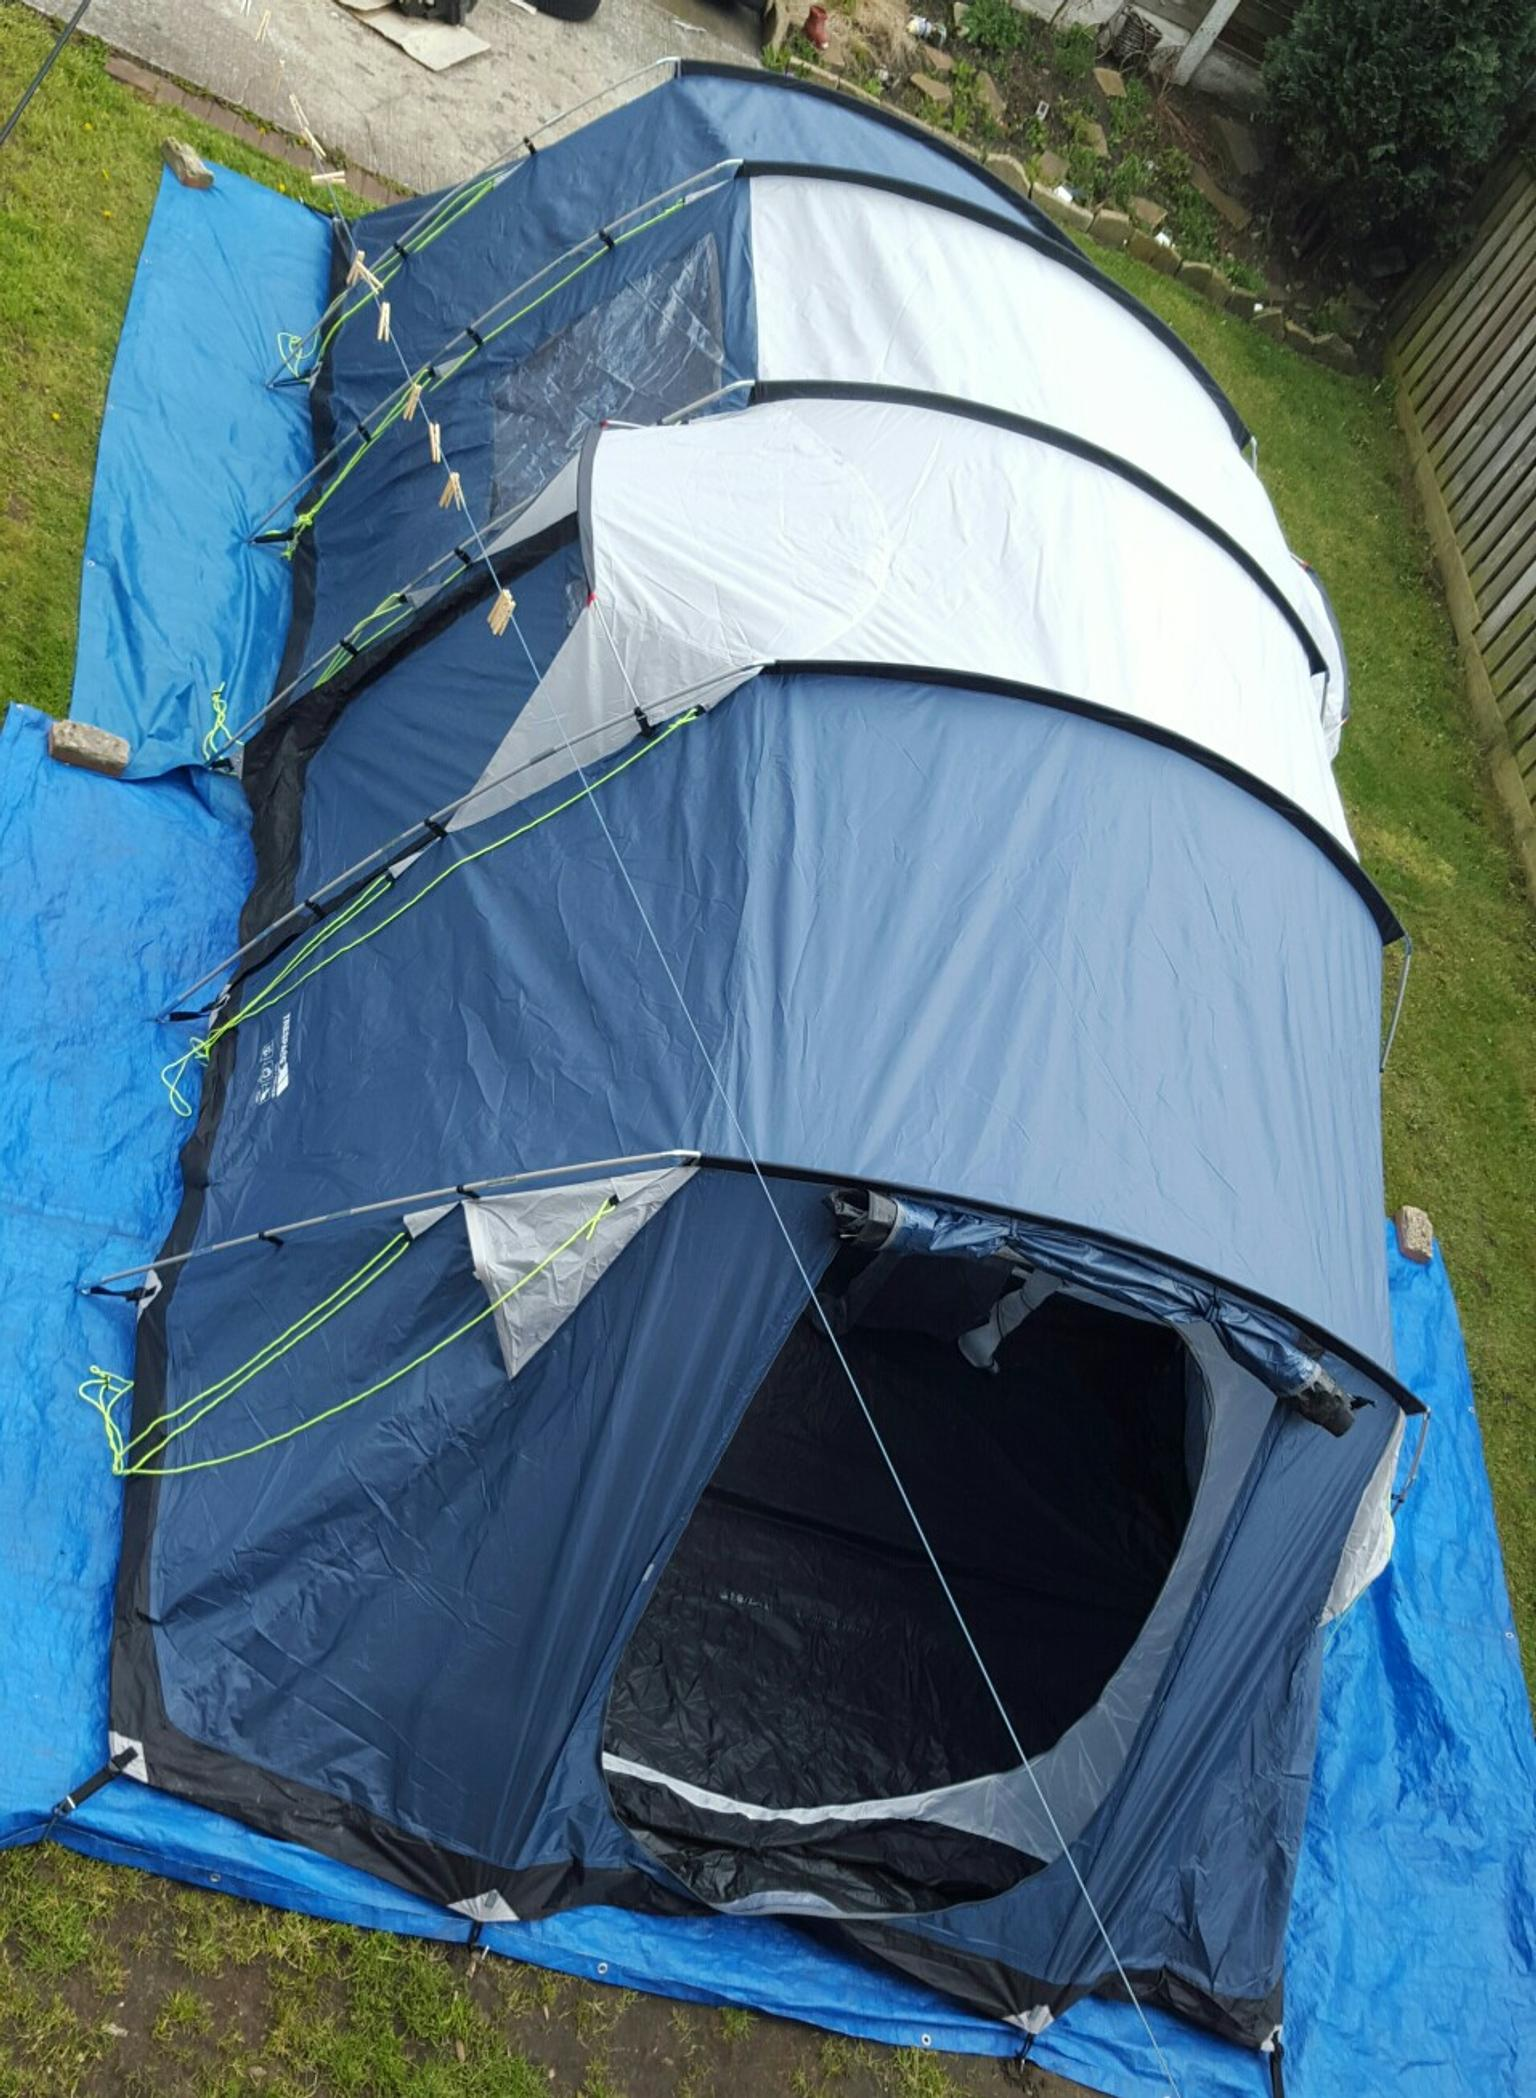 trespass go further 8 man tent new in M33 Sale for £180.00 for sale - Shpock & trespass go further 8 man tent new in M33 Sale for £180.00 for sale ...